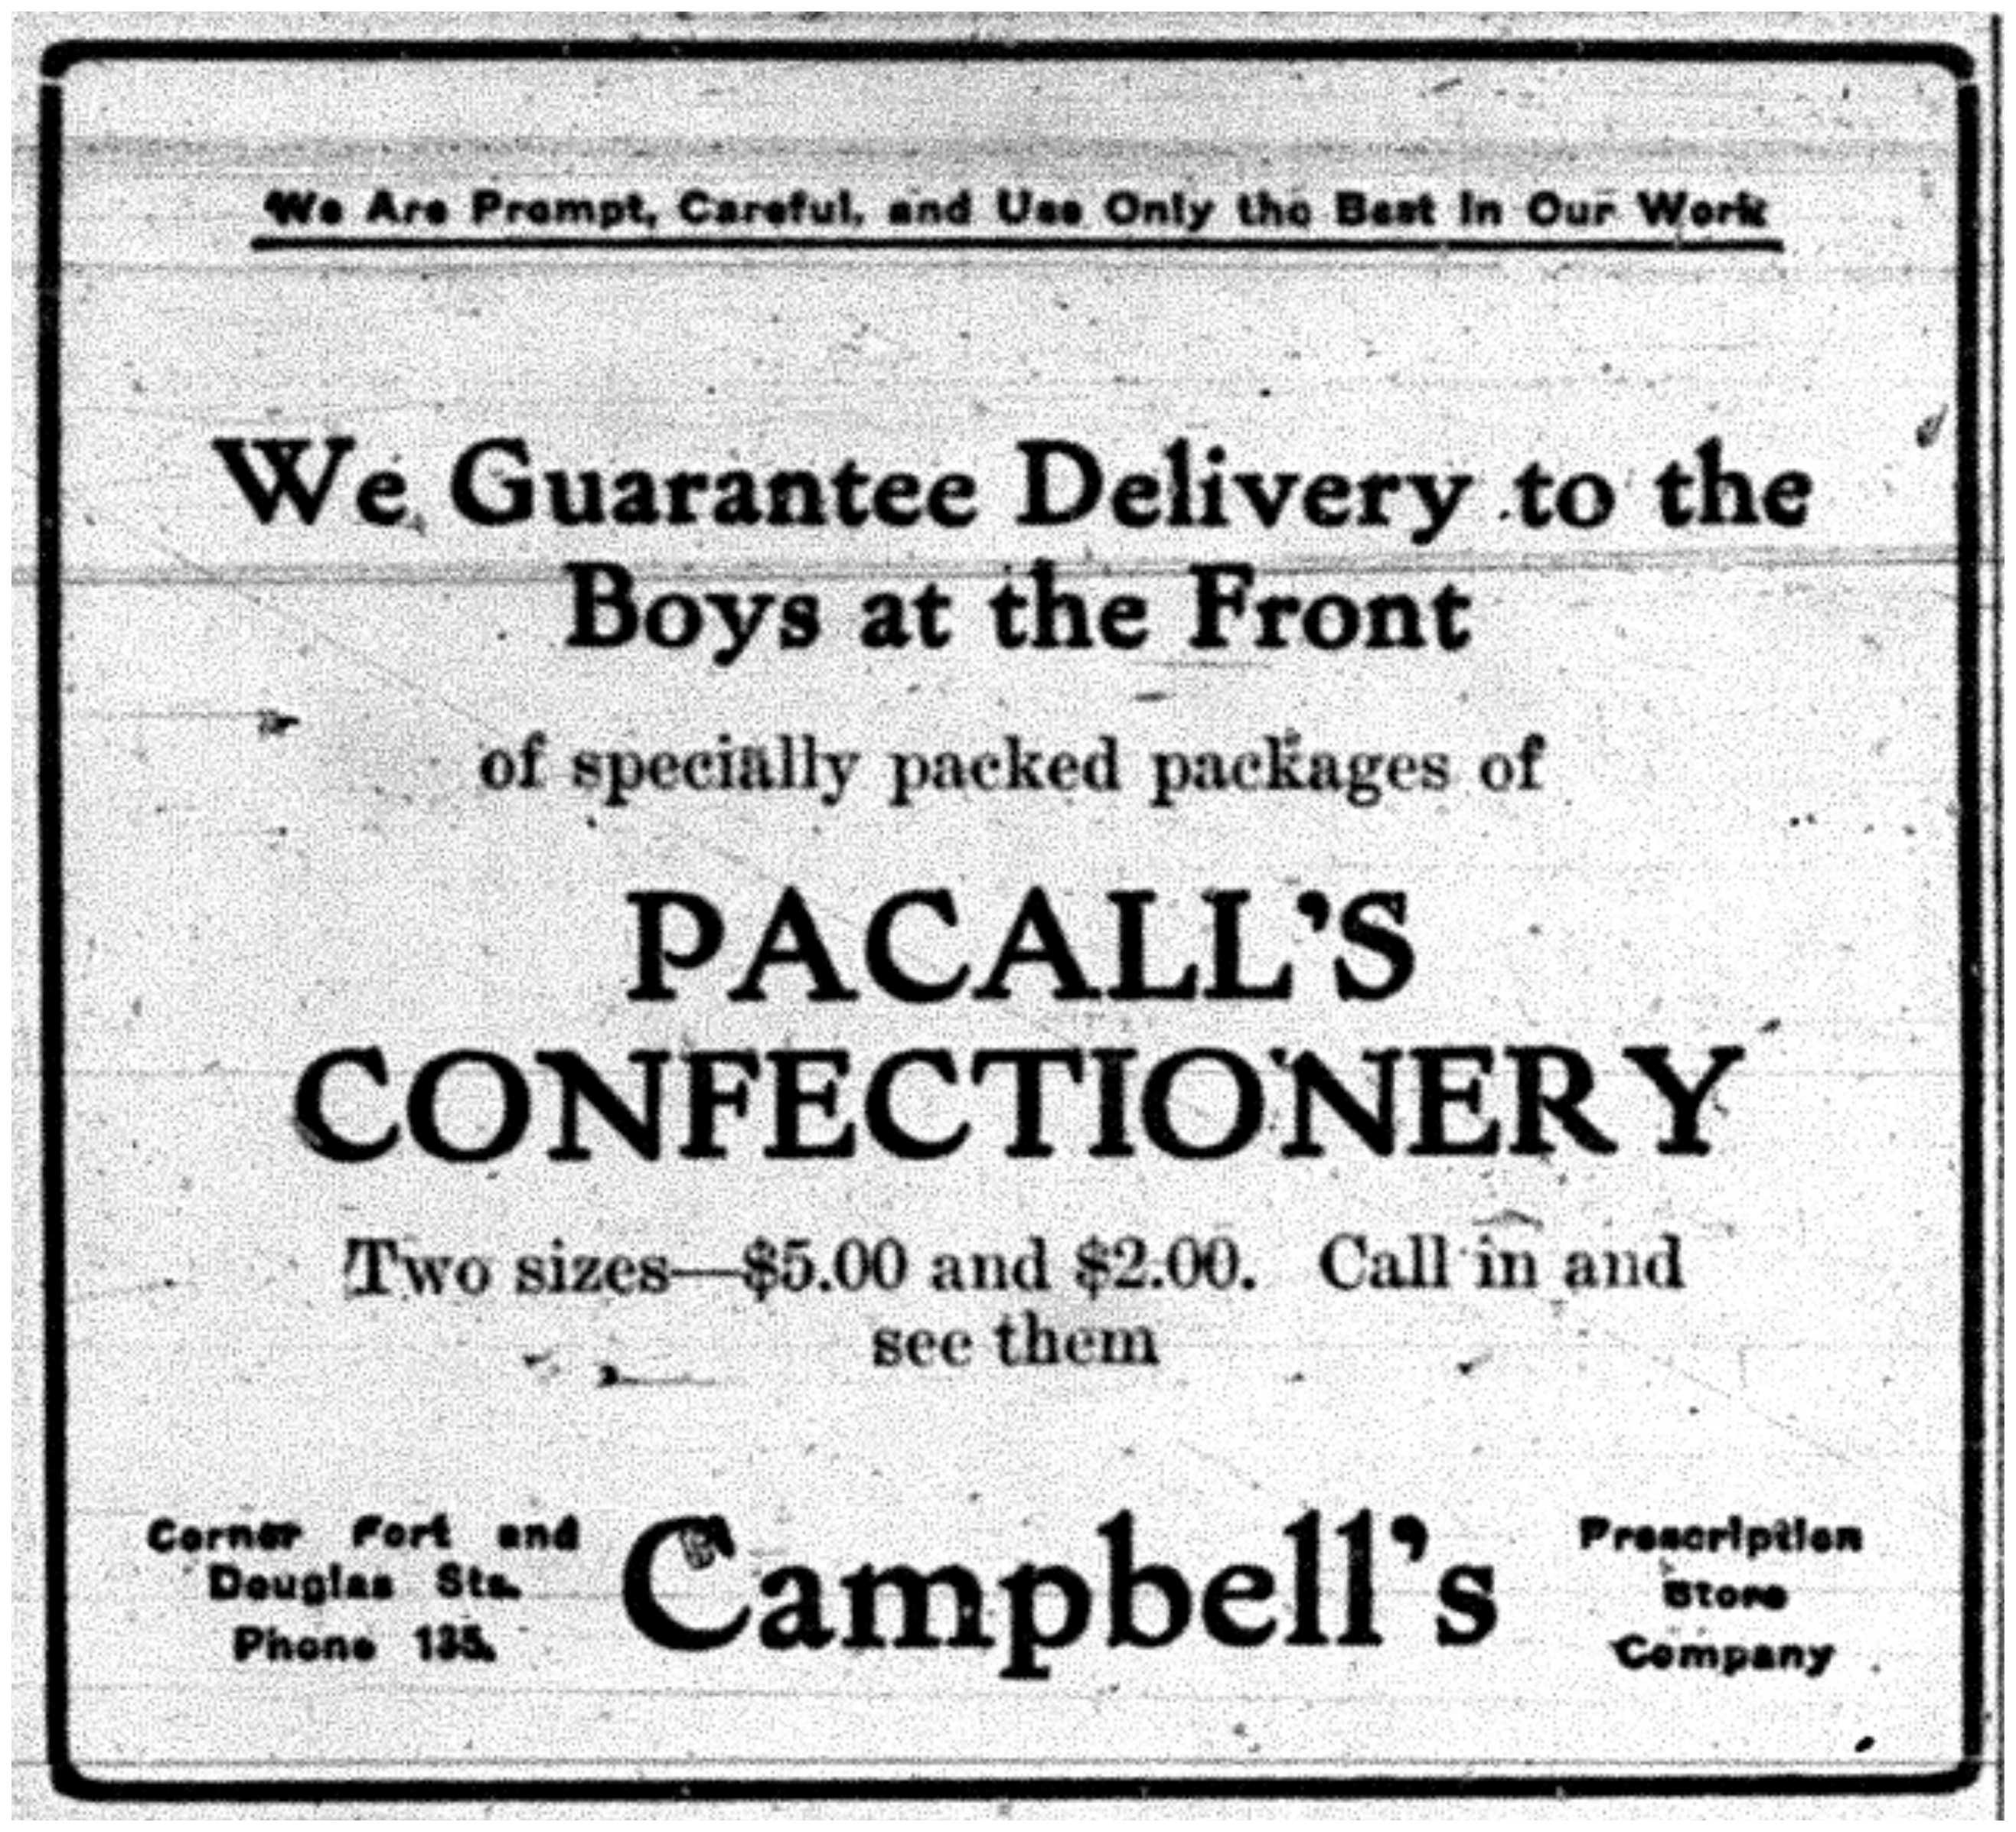 Pascall's Confectionery to the Front